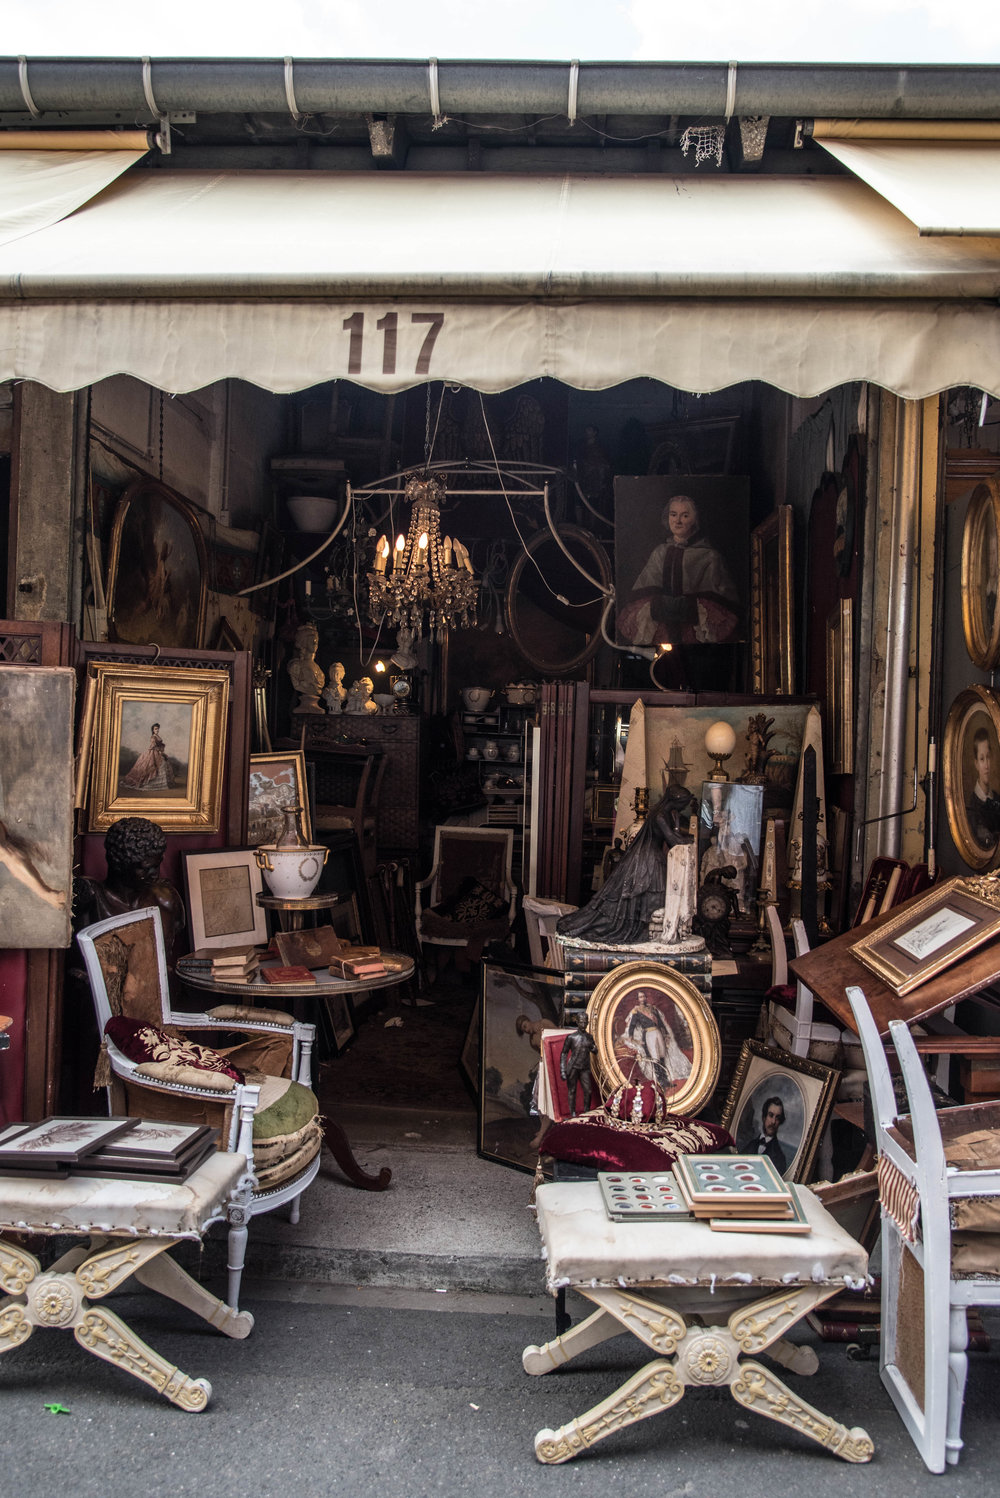 ROSE & IVY Journal | A Guide to Shopping the Paris Flea Market + Our Unique Finds